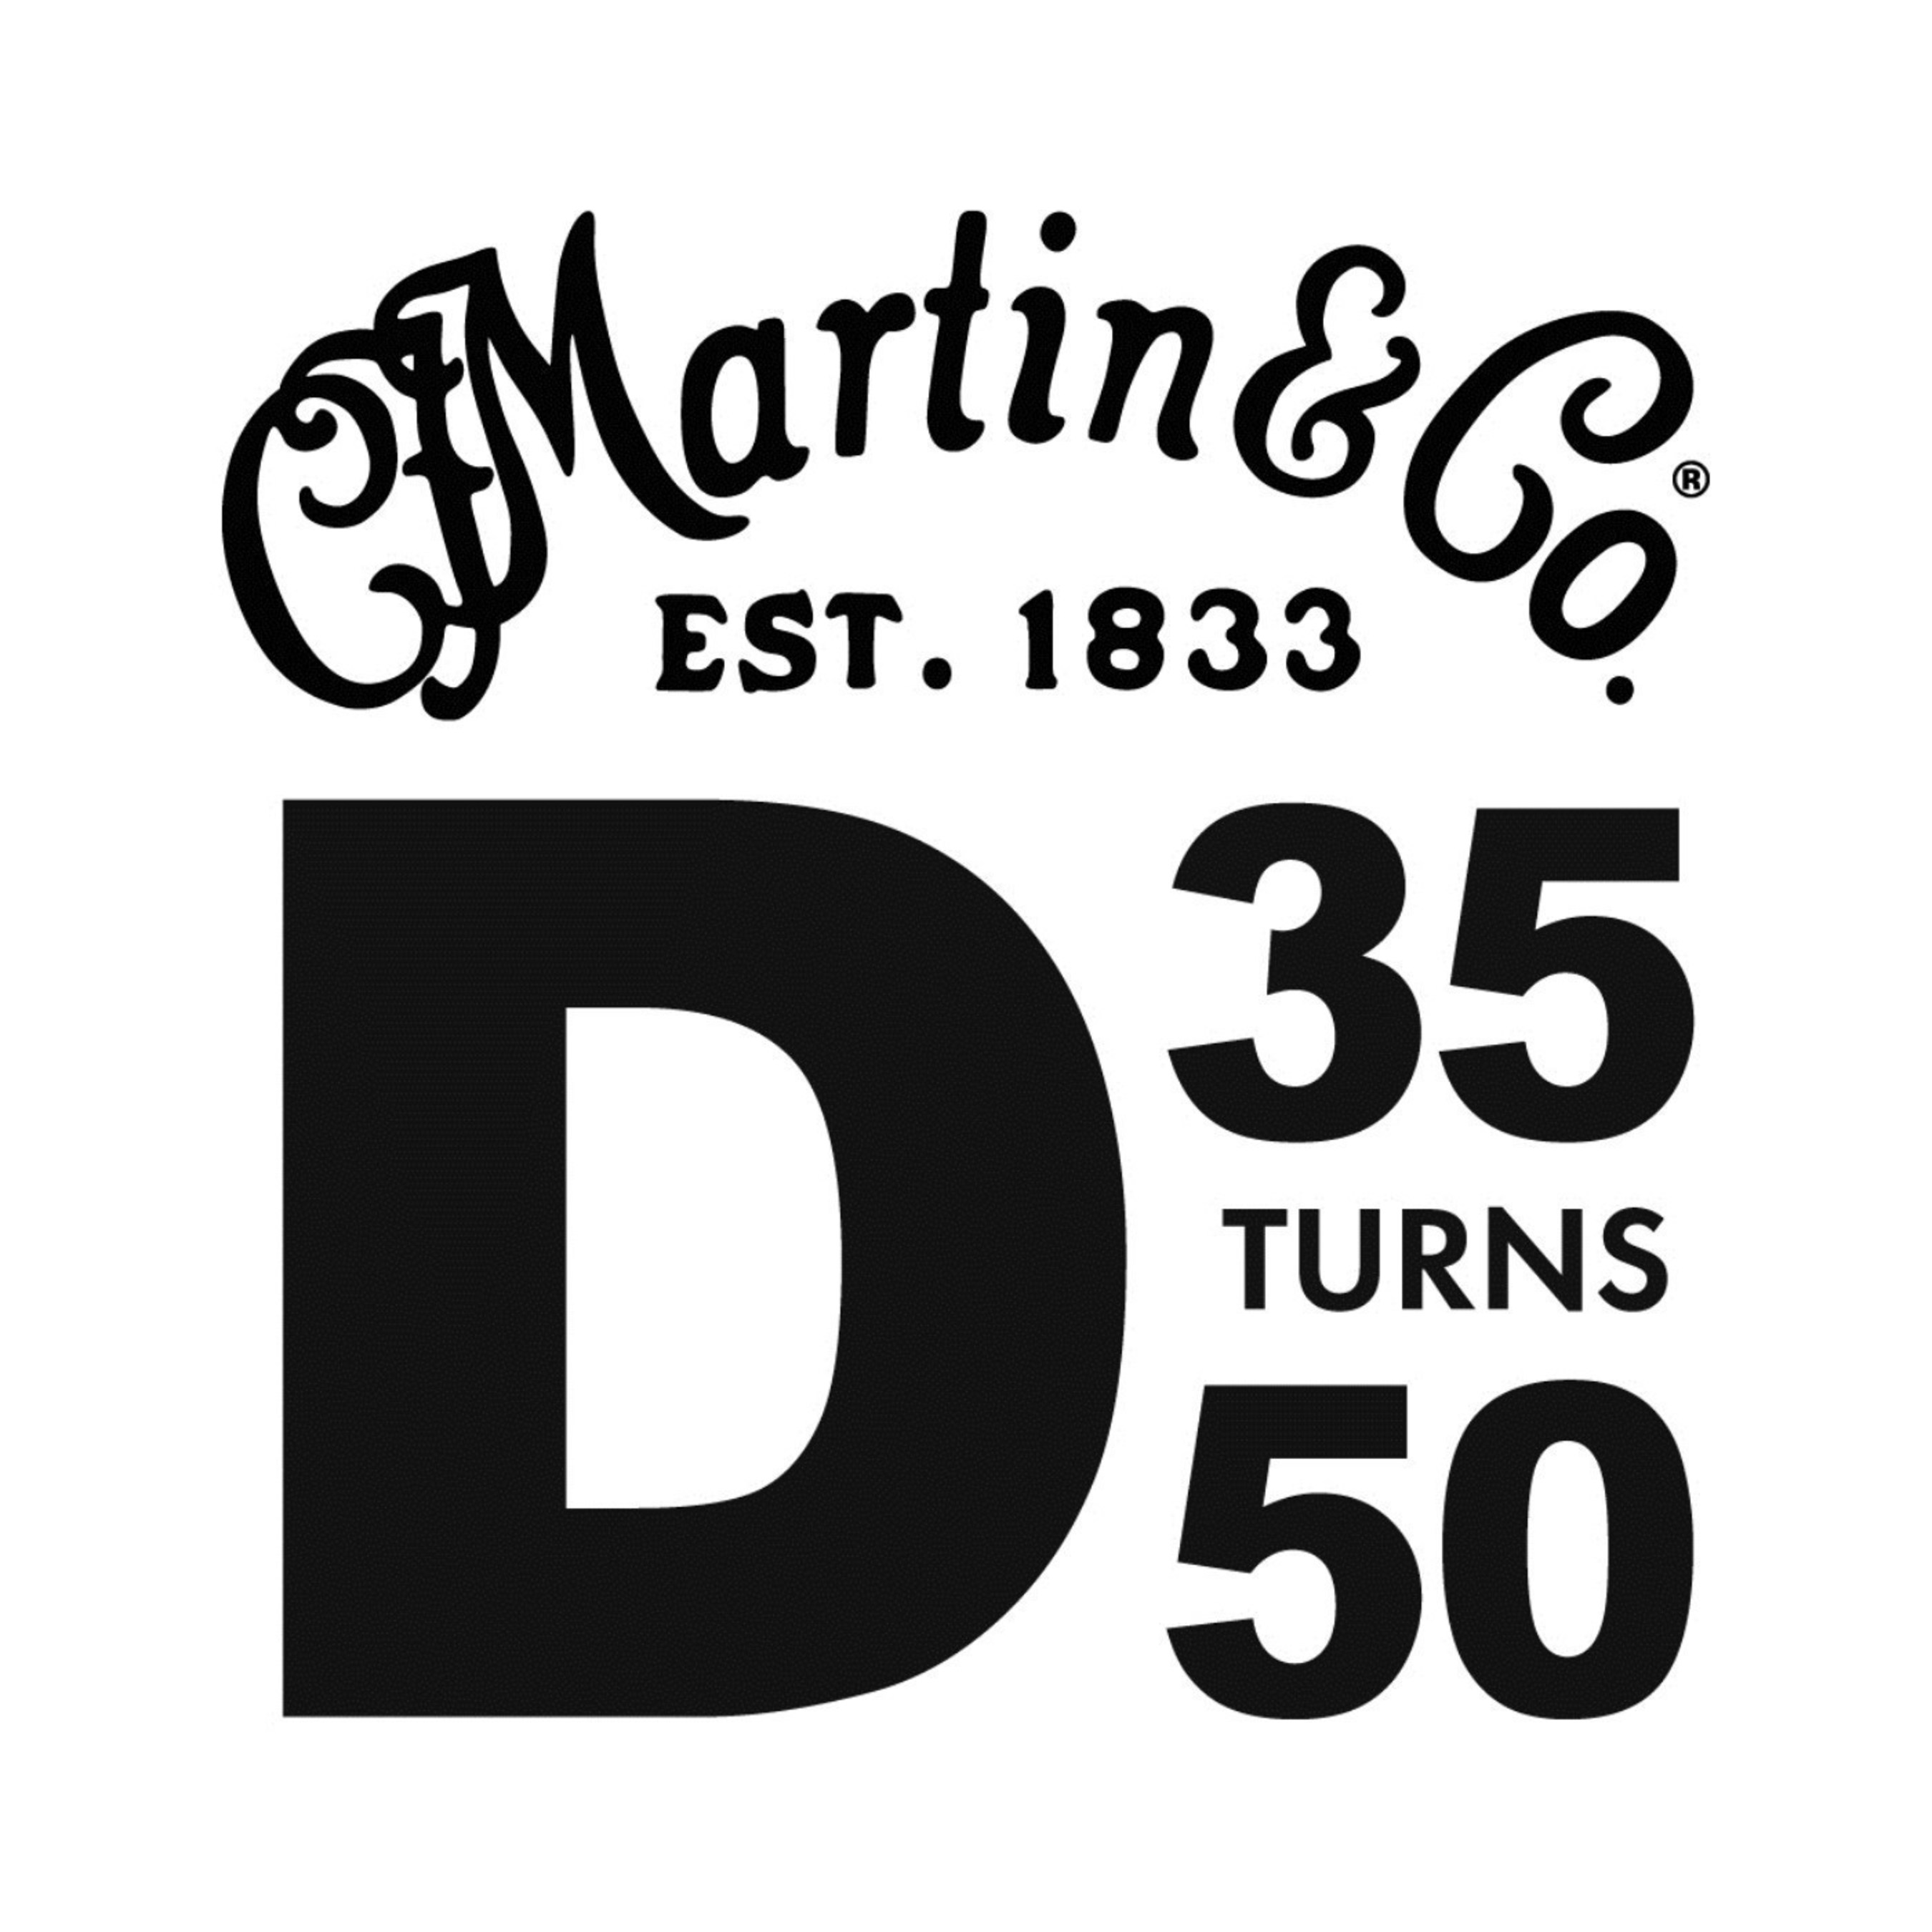 Martin Guitar To Introduce Two New D-35 Models As Part Of Their 2015 Summer NAMM Presentation